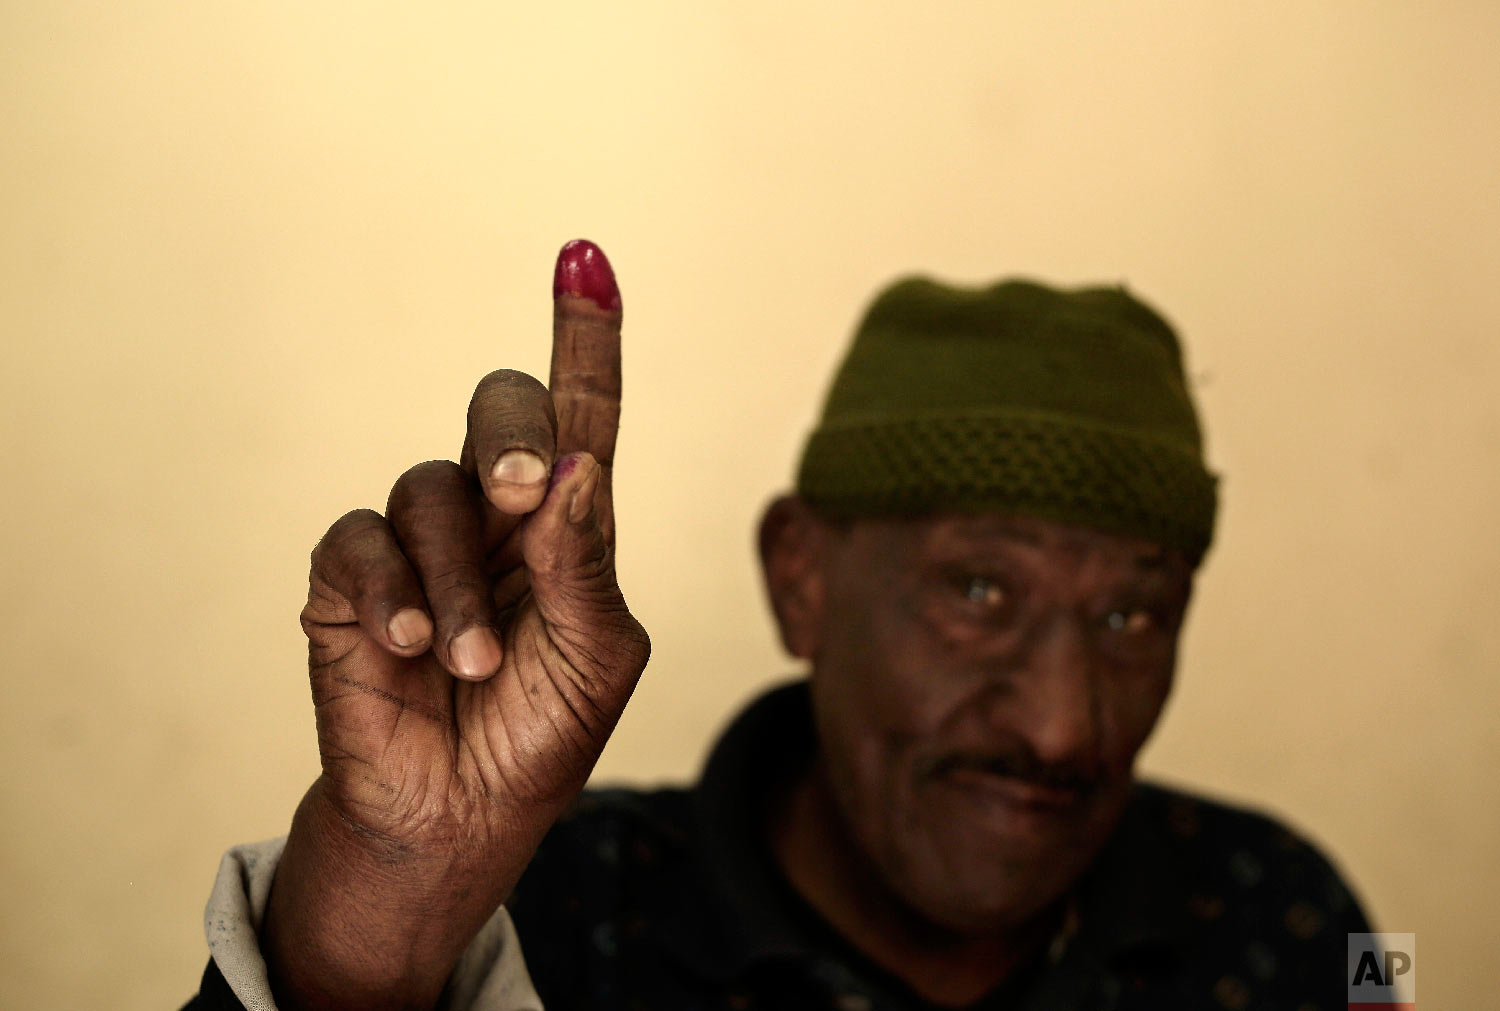 A man shows his inked finger after voting during the first day of the presidential election inside a polling station in Cairo, Egypt, Monday, March 26, 2018. (AP Photo/Nariman El-Mofty)